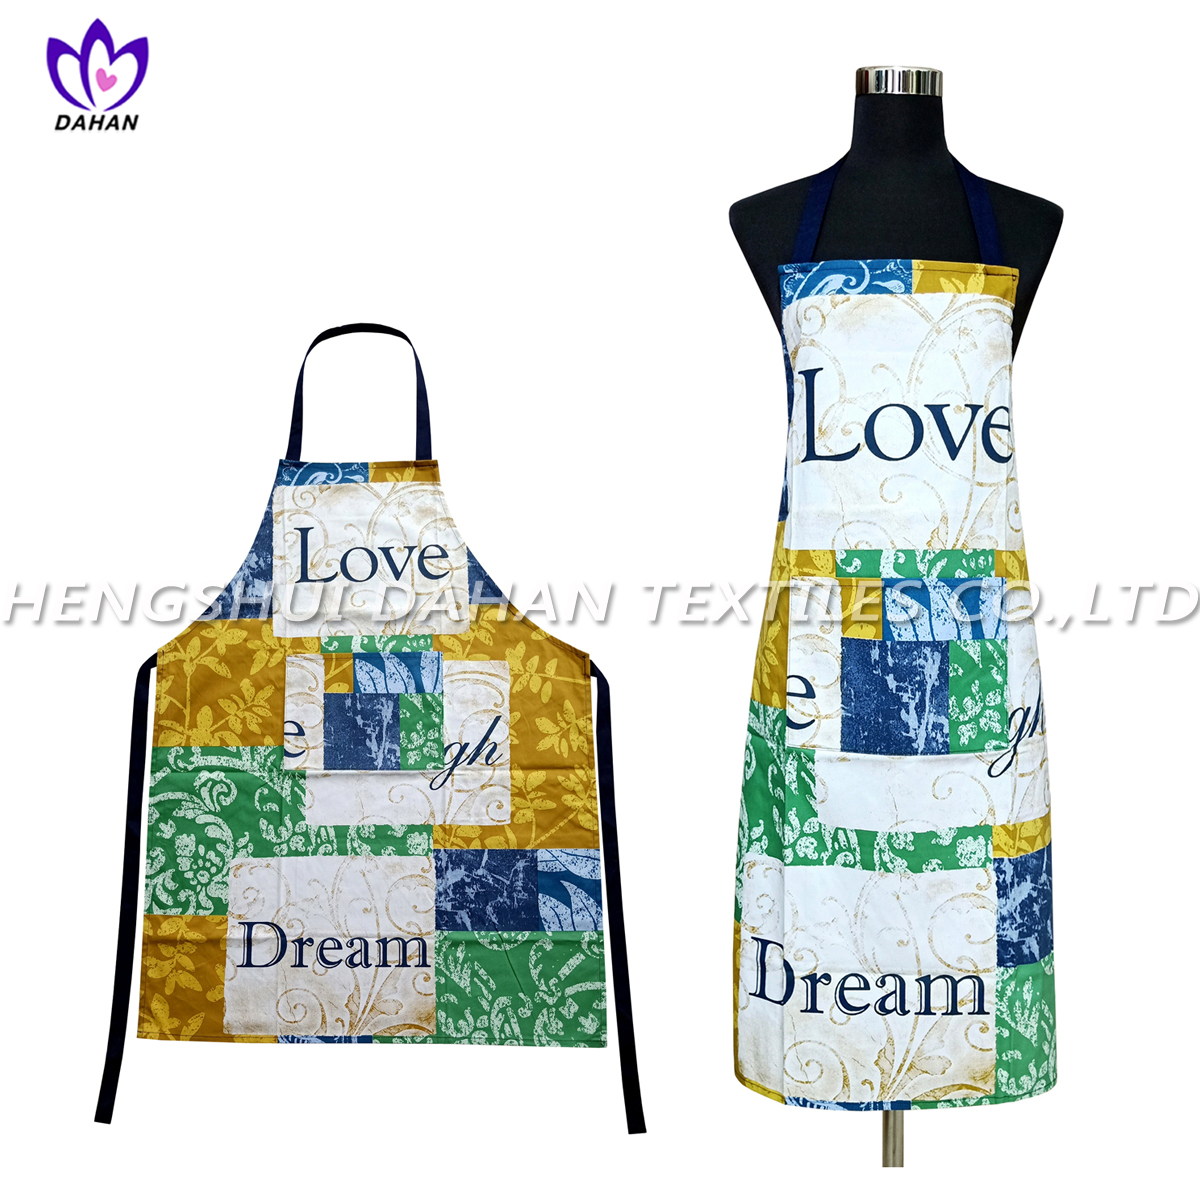 AGP74 100%cotton twill printing waterproof apron.